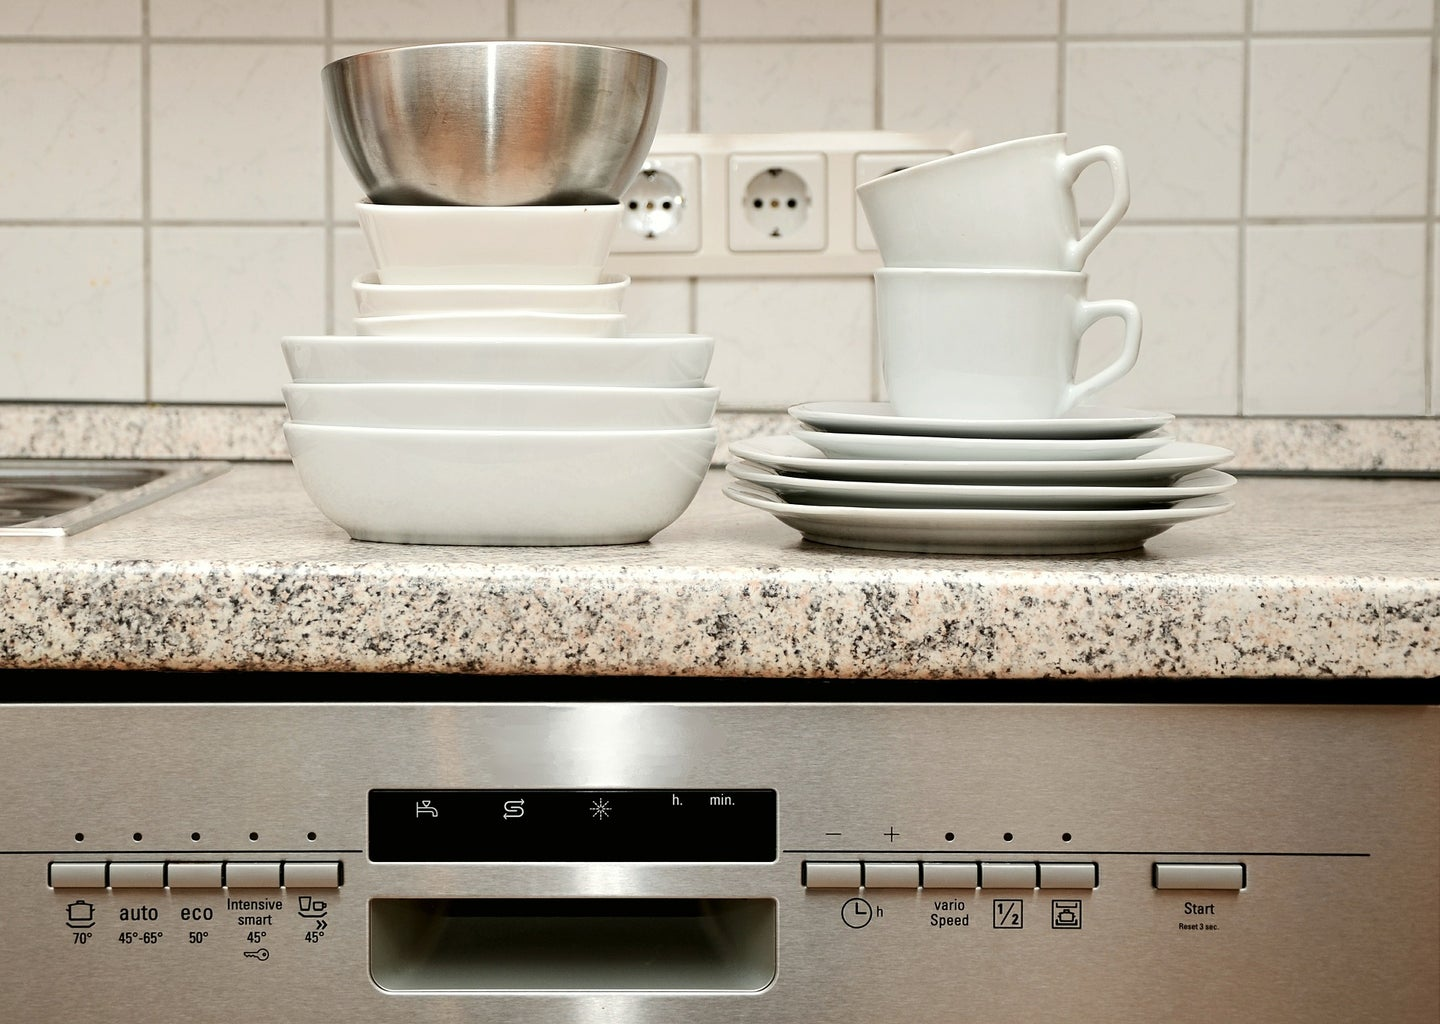 Surprising things you can clean in the dishwasher